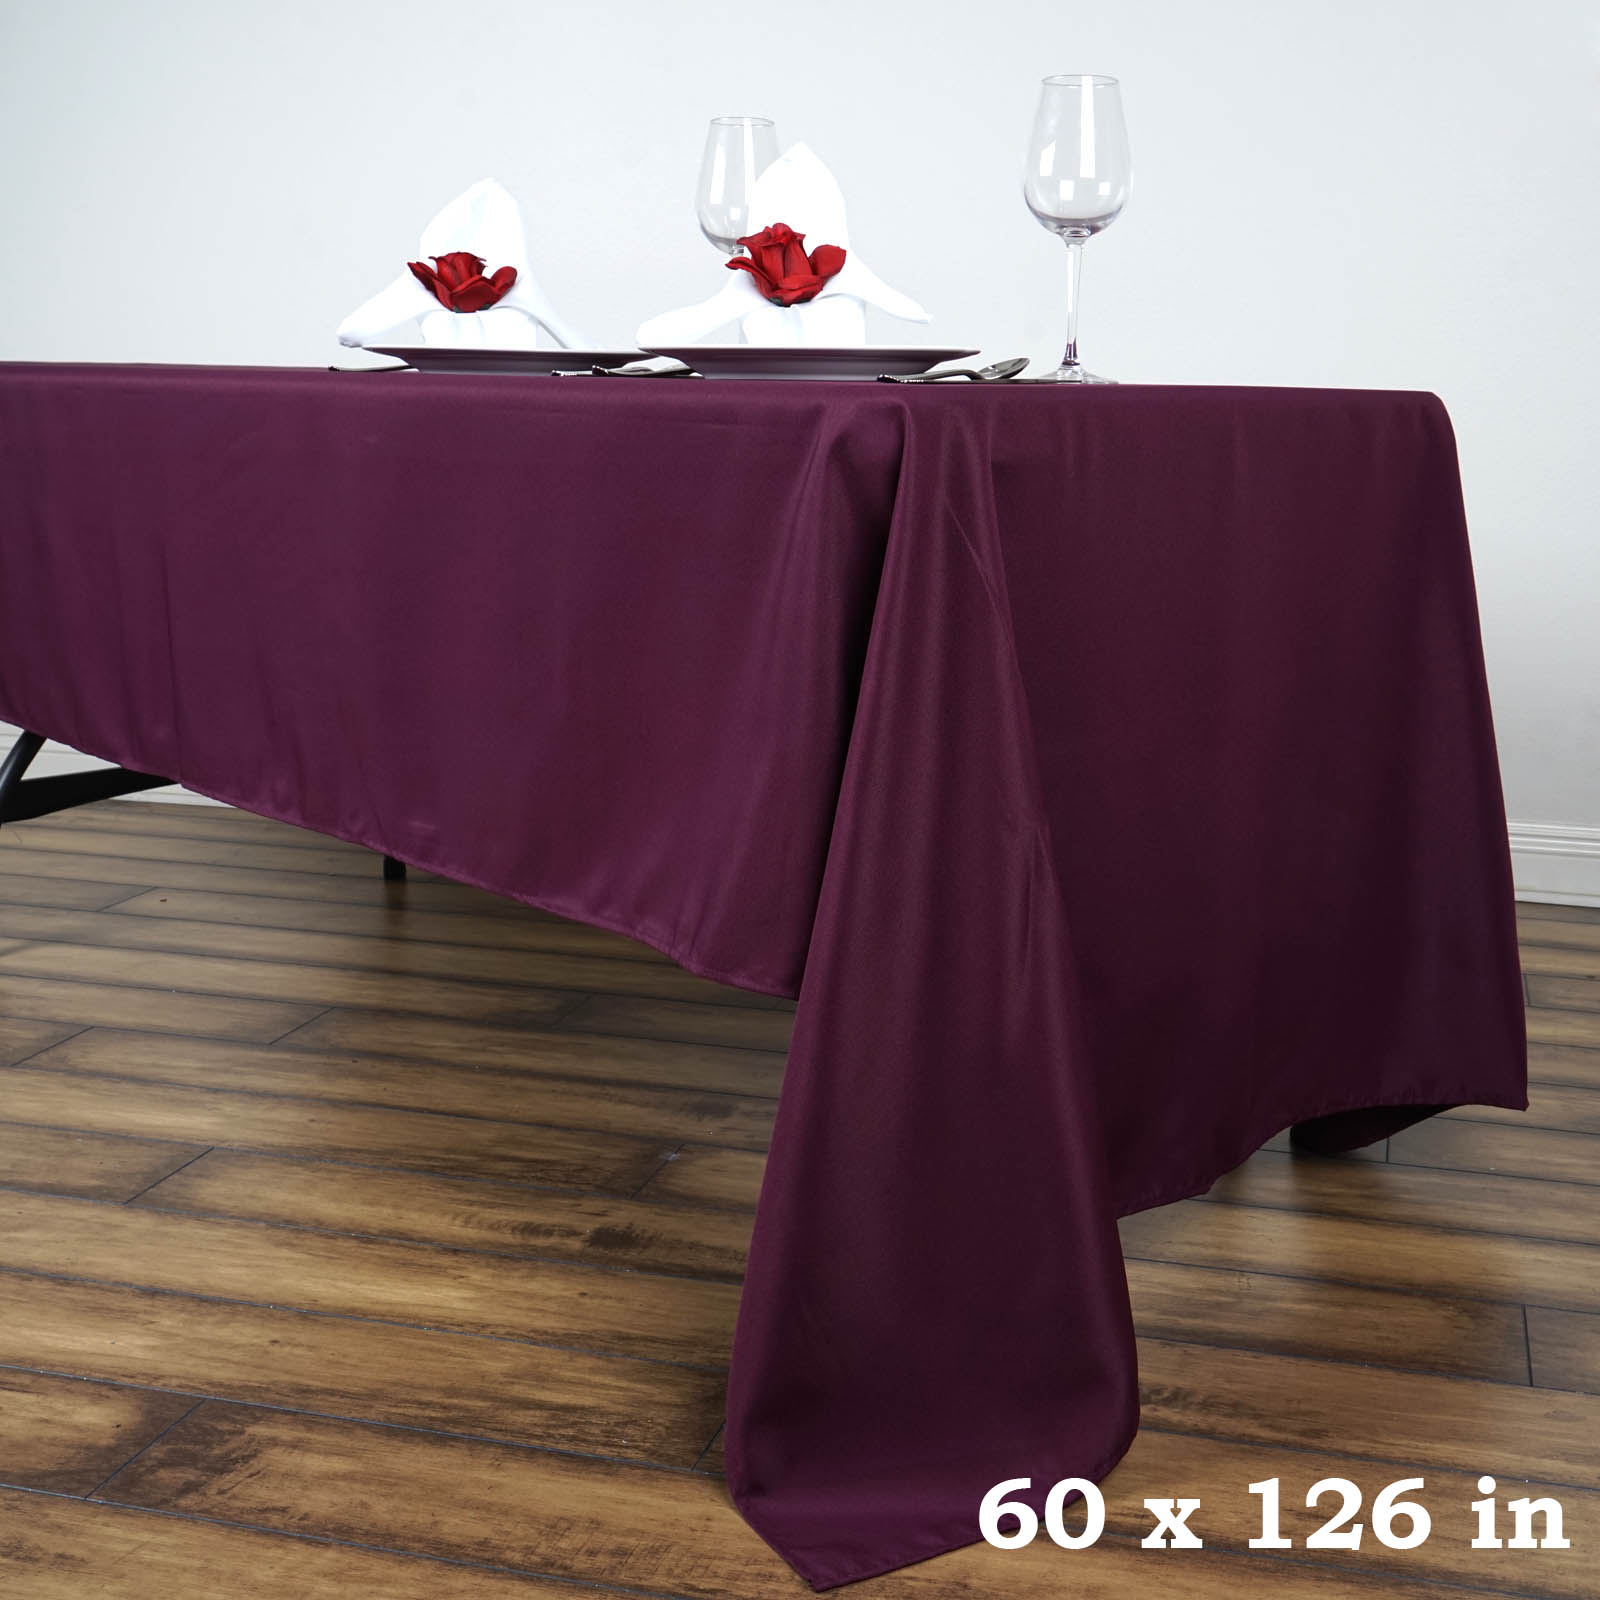 Tablecloths | Discount Linen | eFavormartShop Wedding Supplies· Free Shipping Over $· The Latest Wedding Favors· High Quality Products1,+ followers on Twitter.